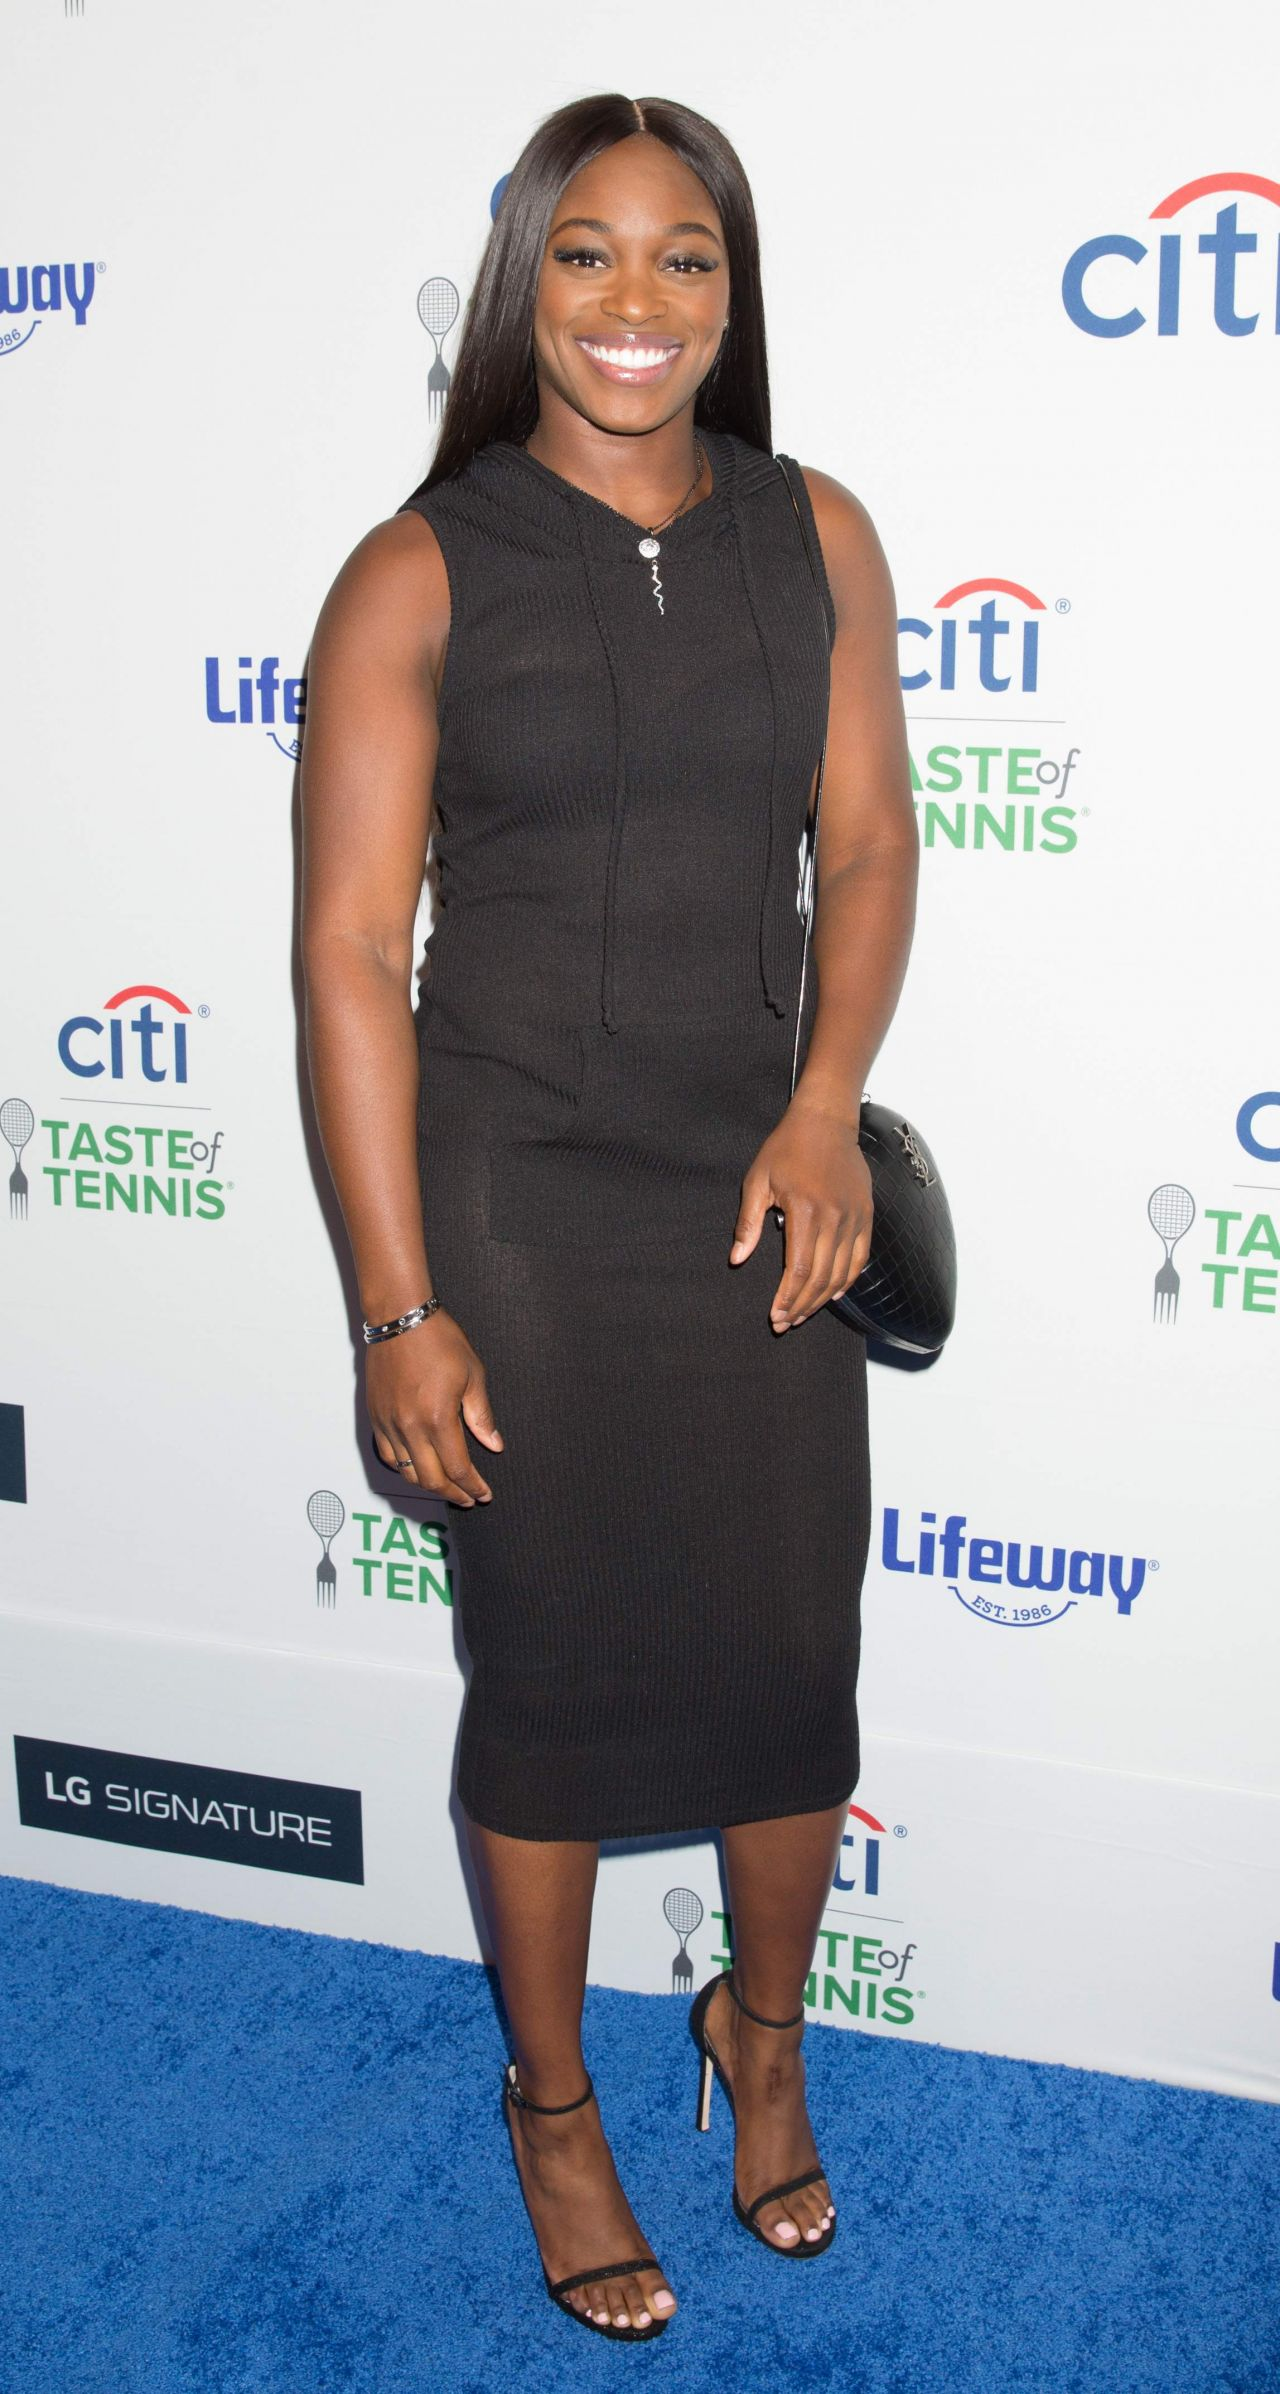 Image result for sloane stephens